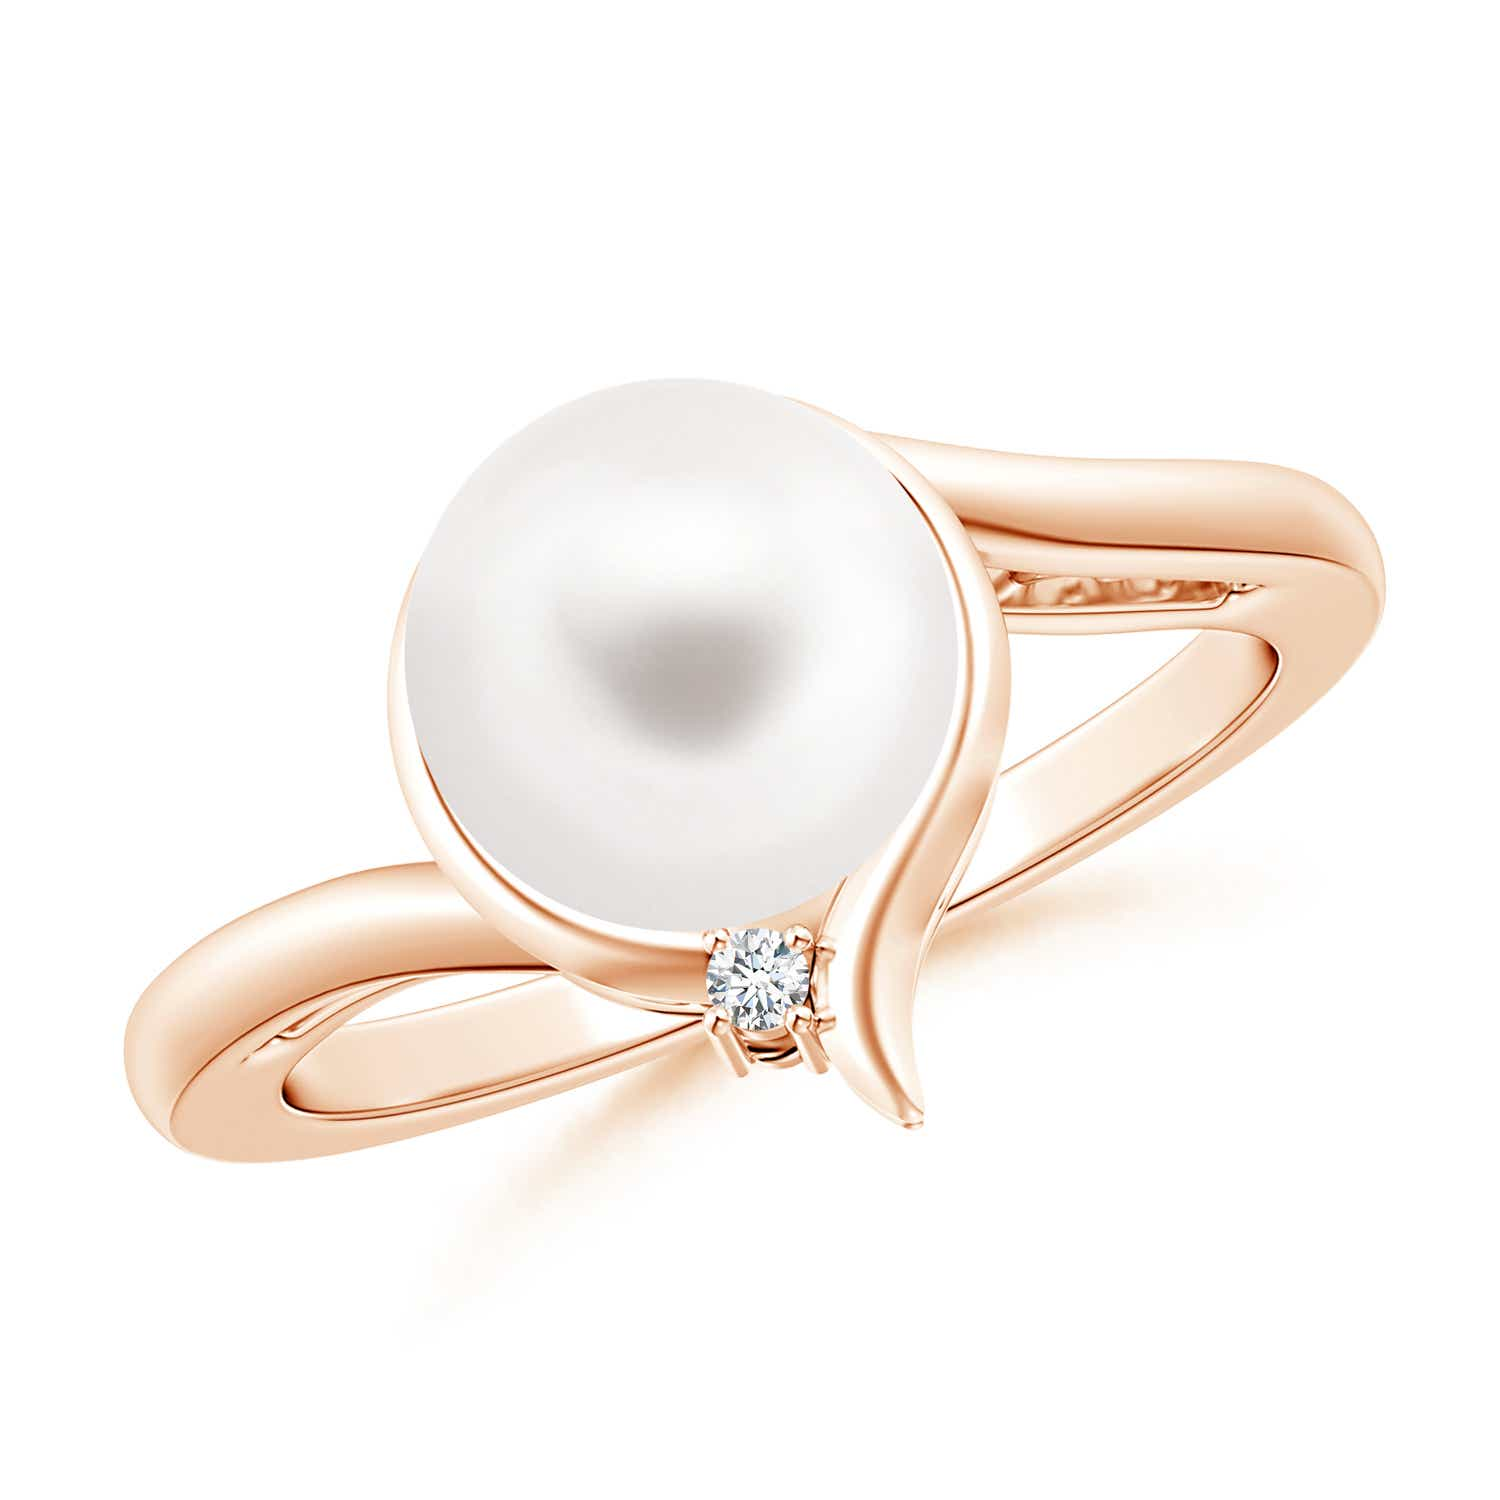 Contemporary FreshWater Cultured Pearl Solitaire Ring with Diamond - Angara.com